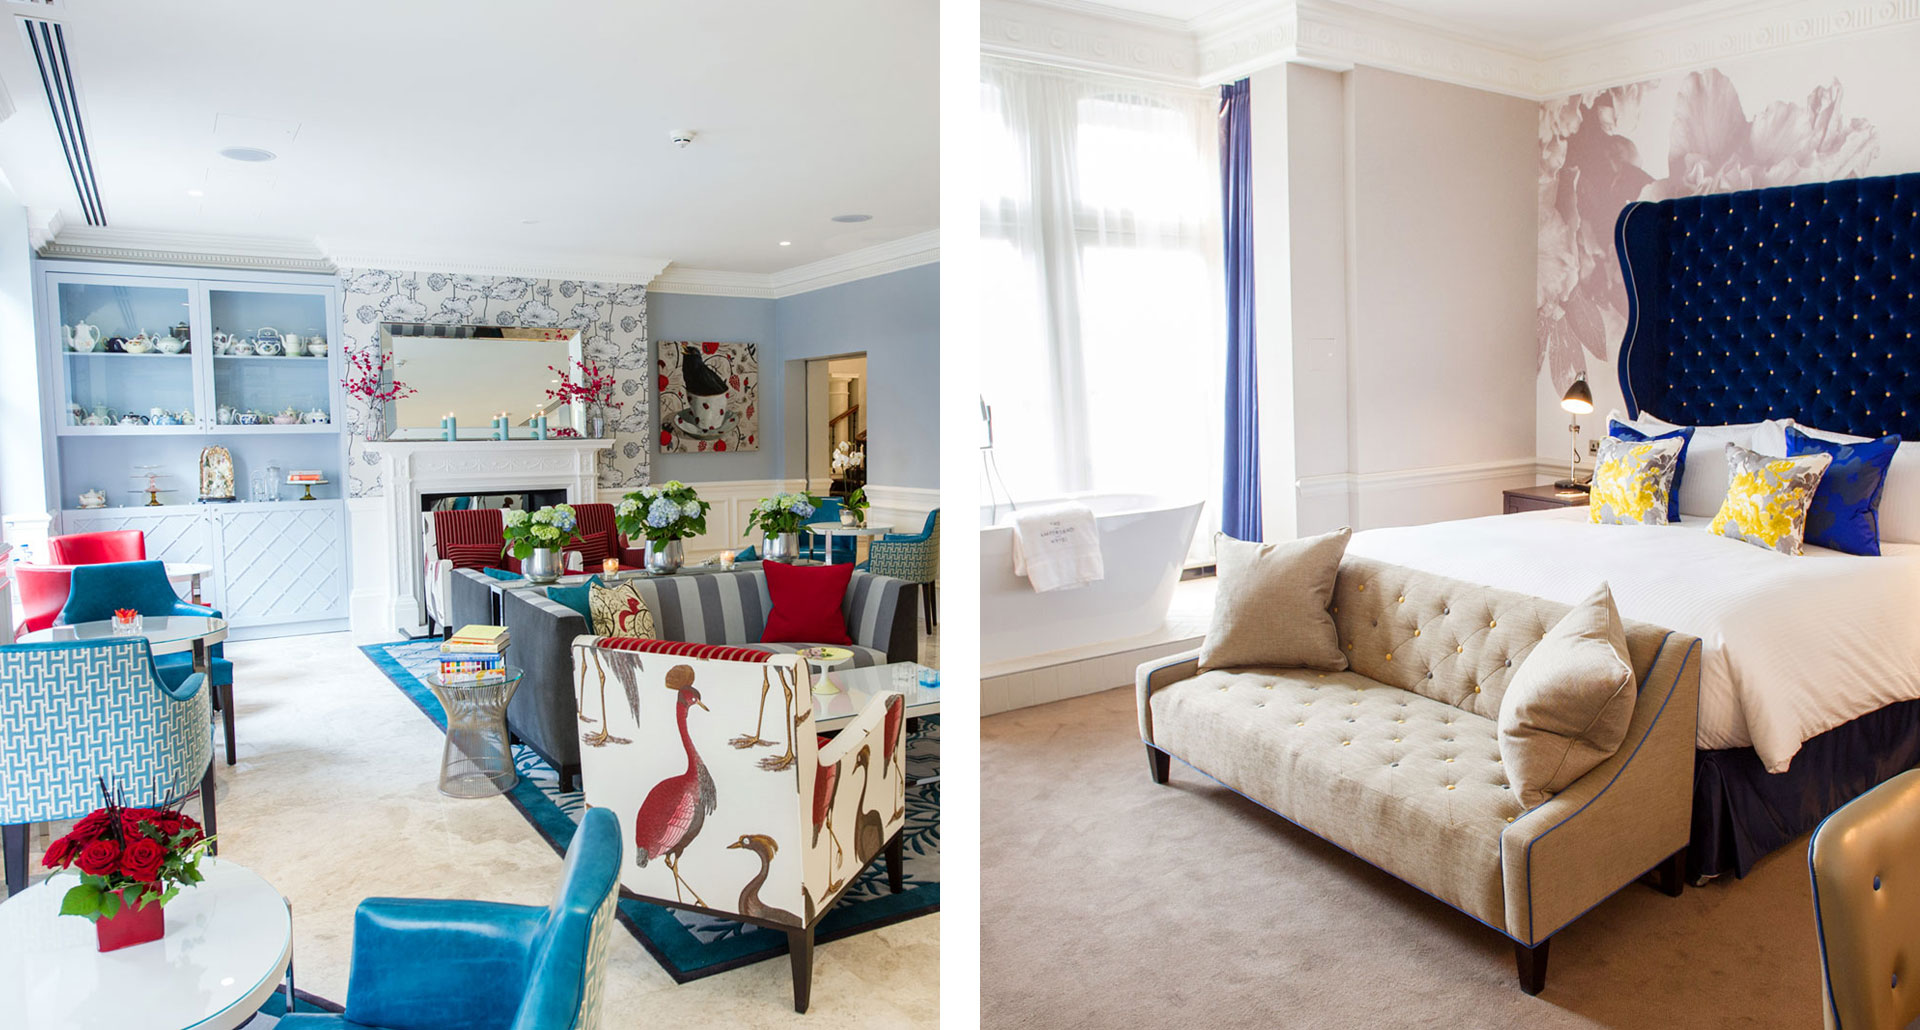 The Ampersand Hotel - boutique hotel in London